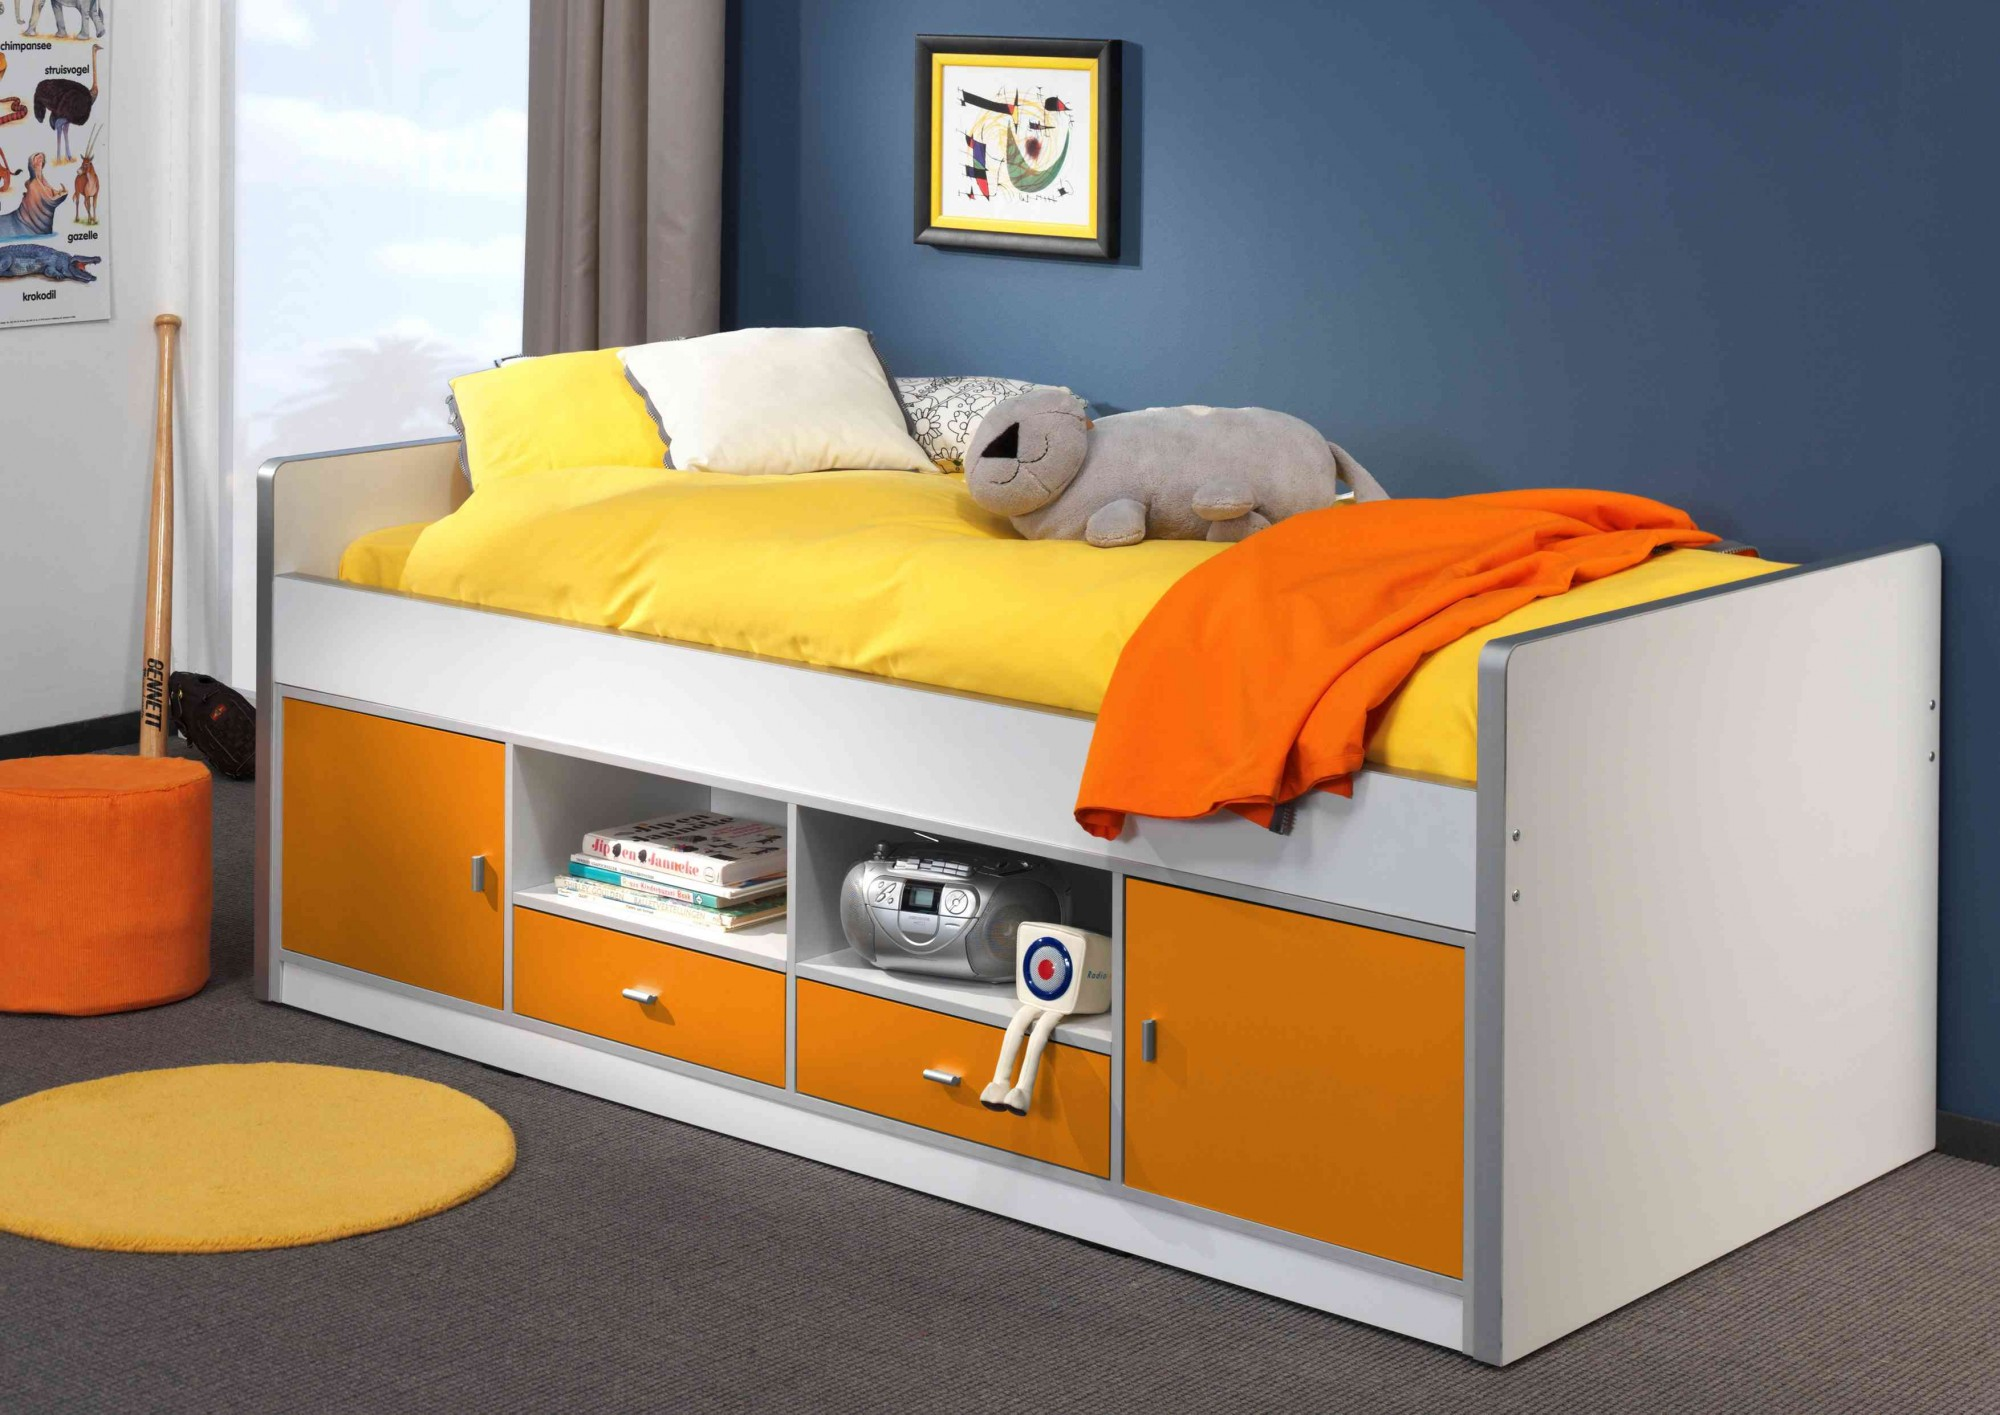 kojenbett bonny liegefl che 90 x 200 cm wei orange kinder jugendzimmer funktionsbetten. Black Bedroom Furniture Sets. Home Design Ideas